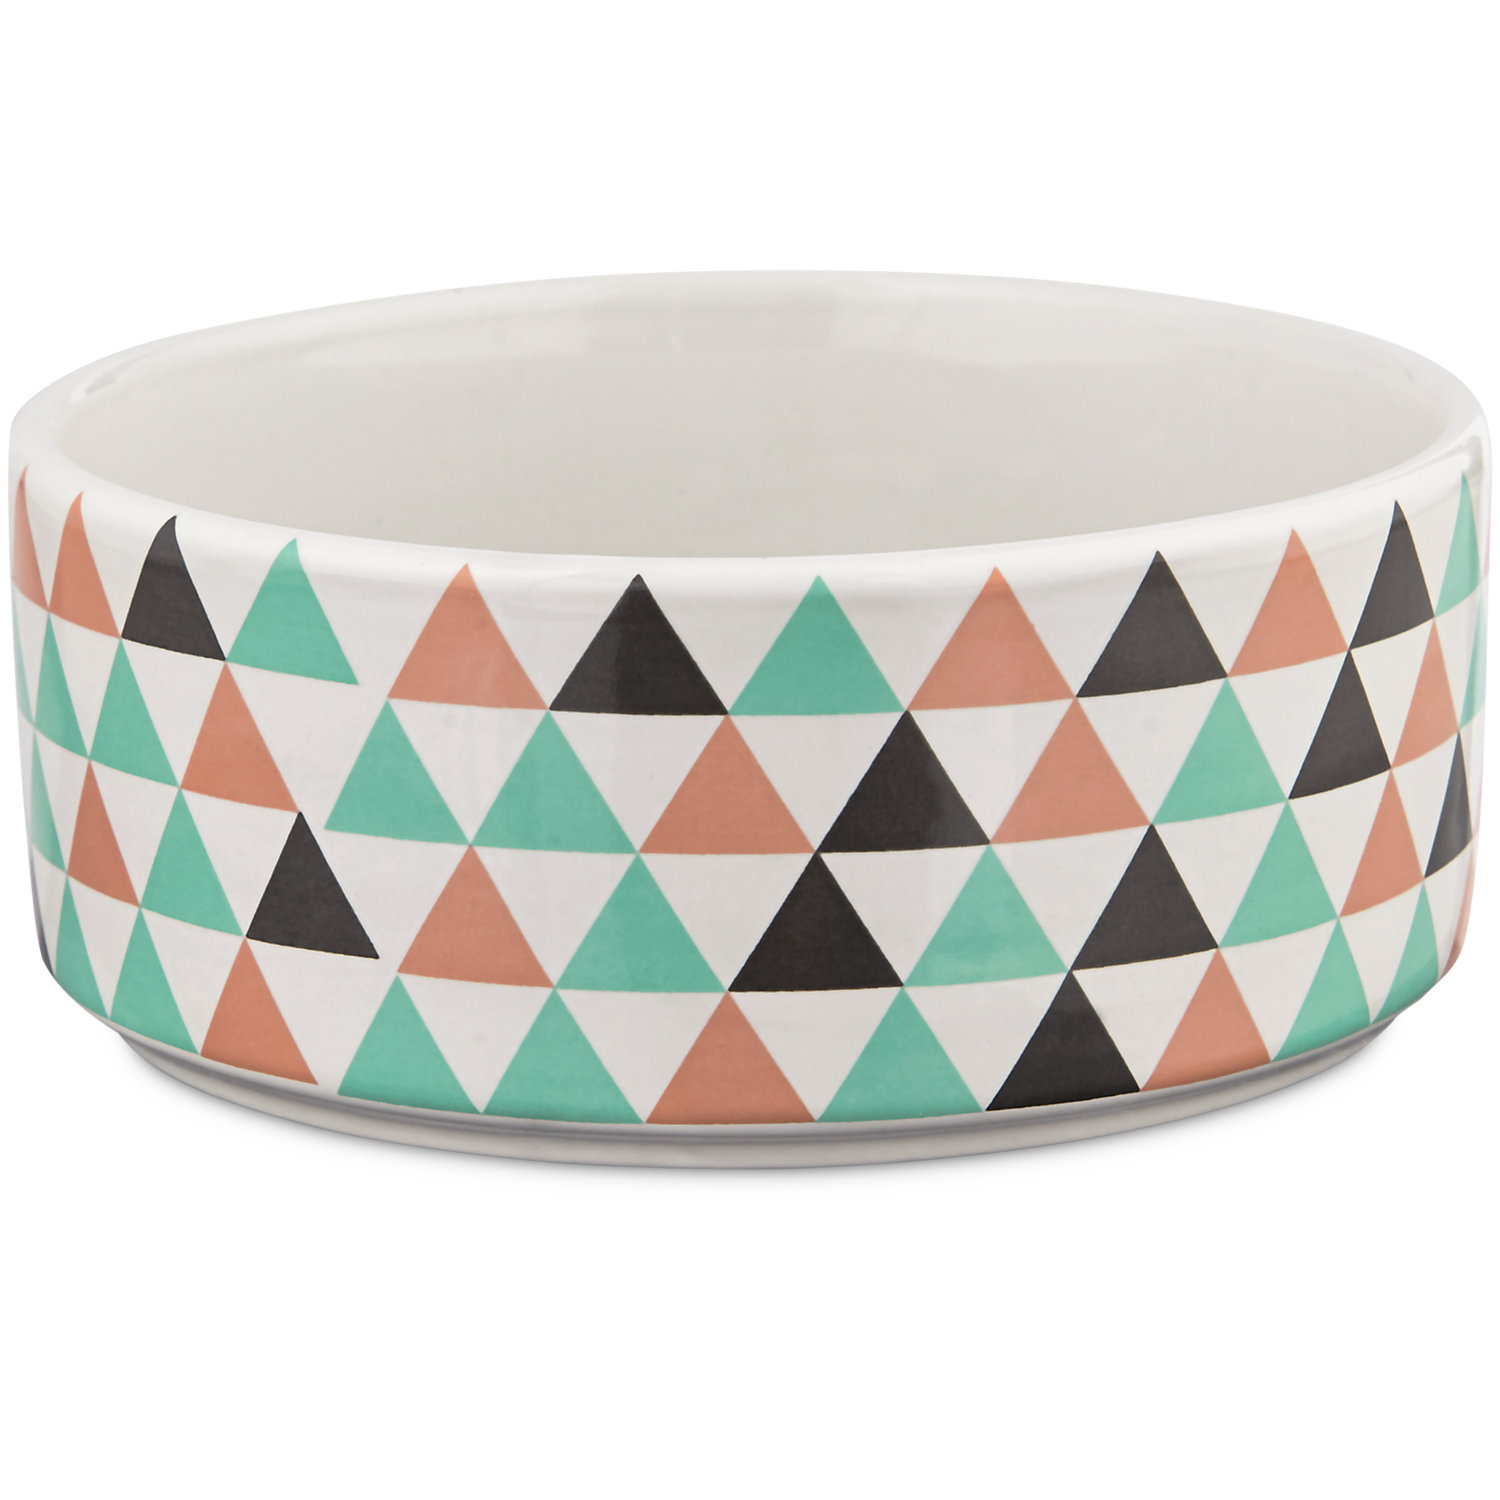 Harmony Boho Ceramic Dog Bowl 3 Cup Medium Multi Color